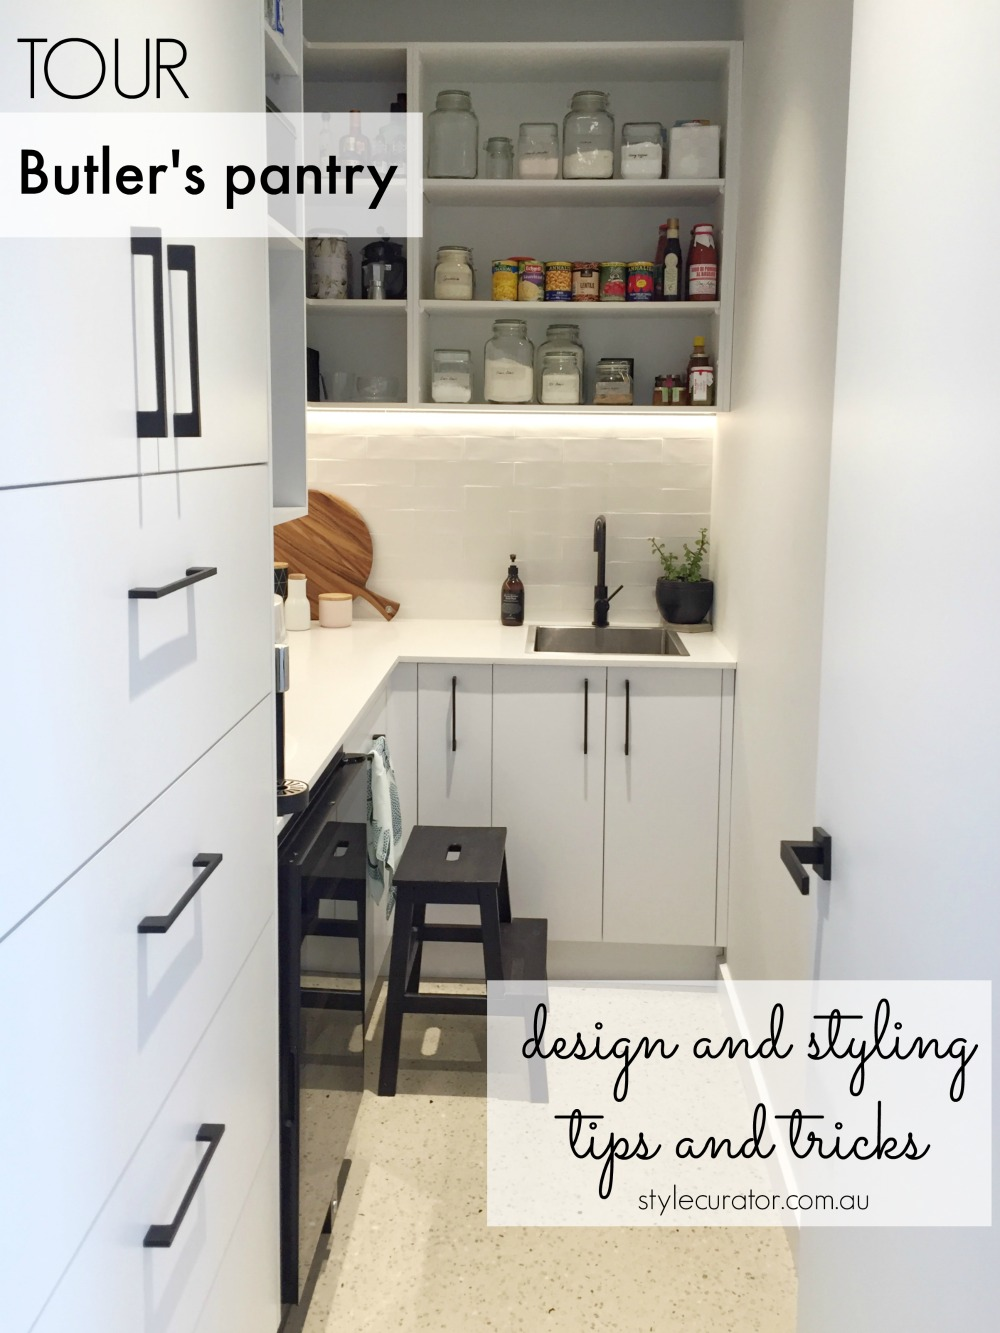 Feature butler's pantry image